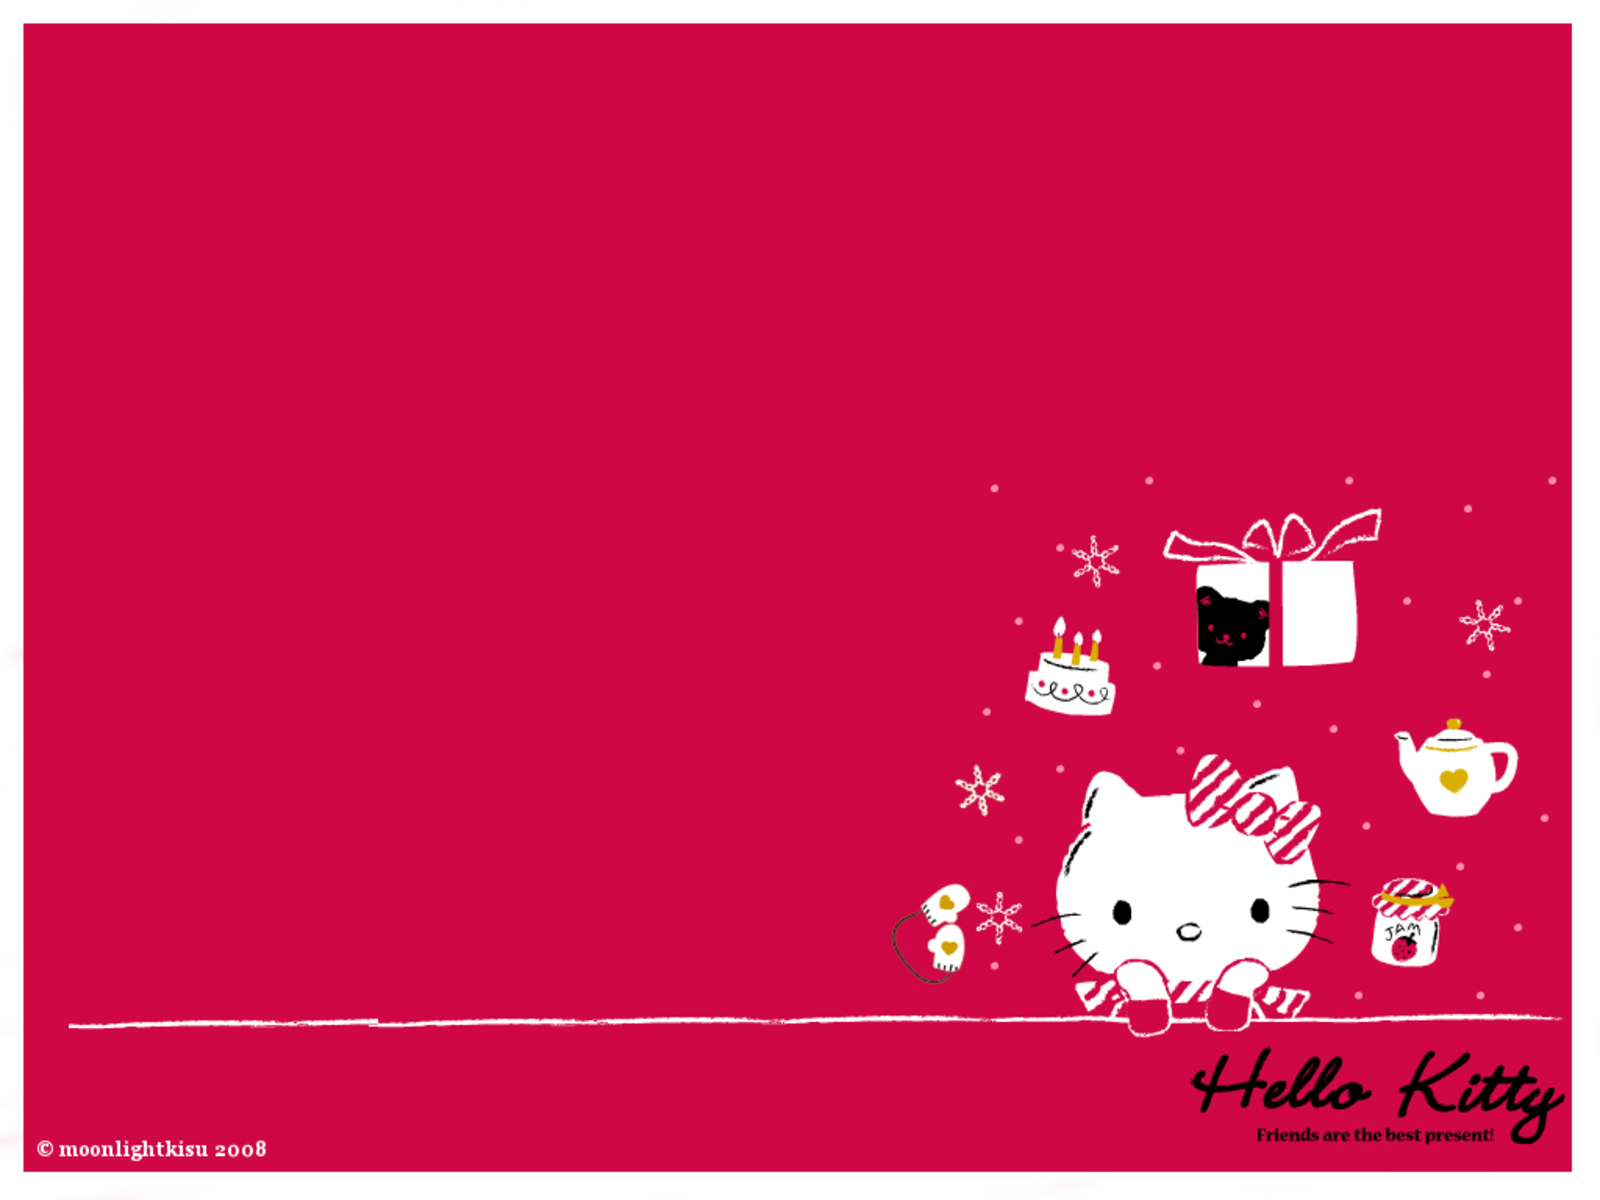 hello kitty wallpaper 2014 wallpaper high definition